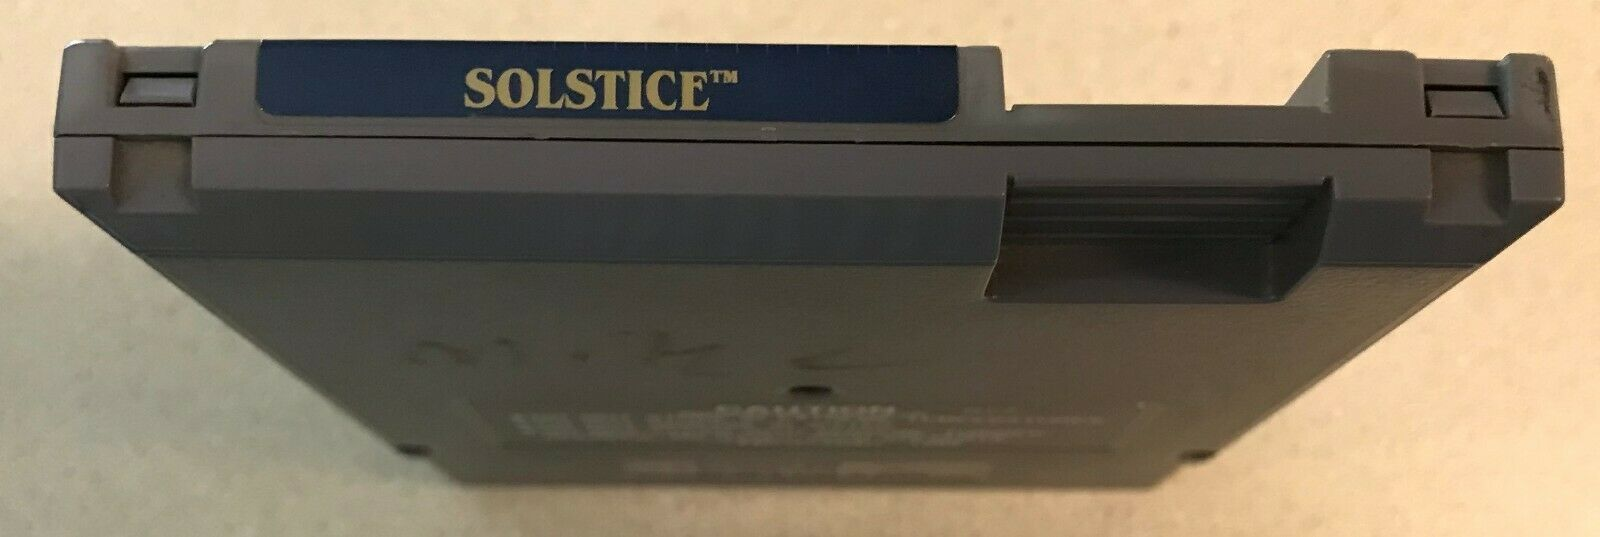 Solstice : The Quest for the Staff of Demnos (Nintendo NES, 1990) Game Cartridge image 4